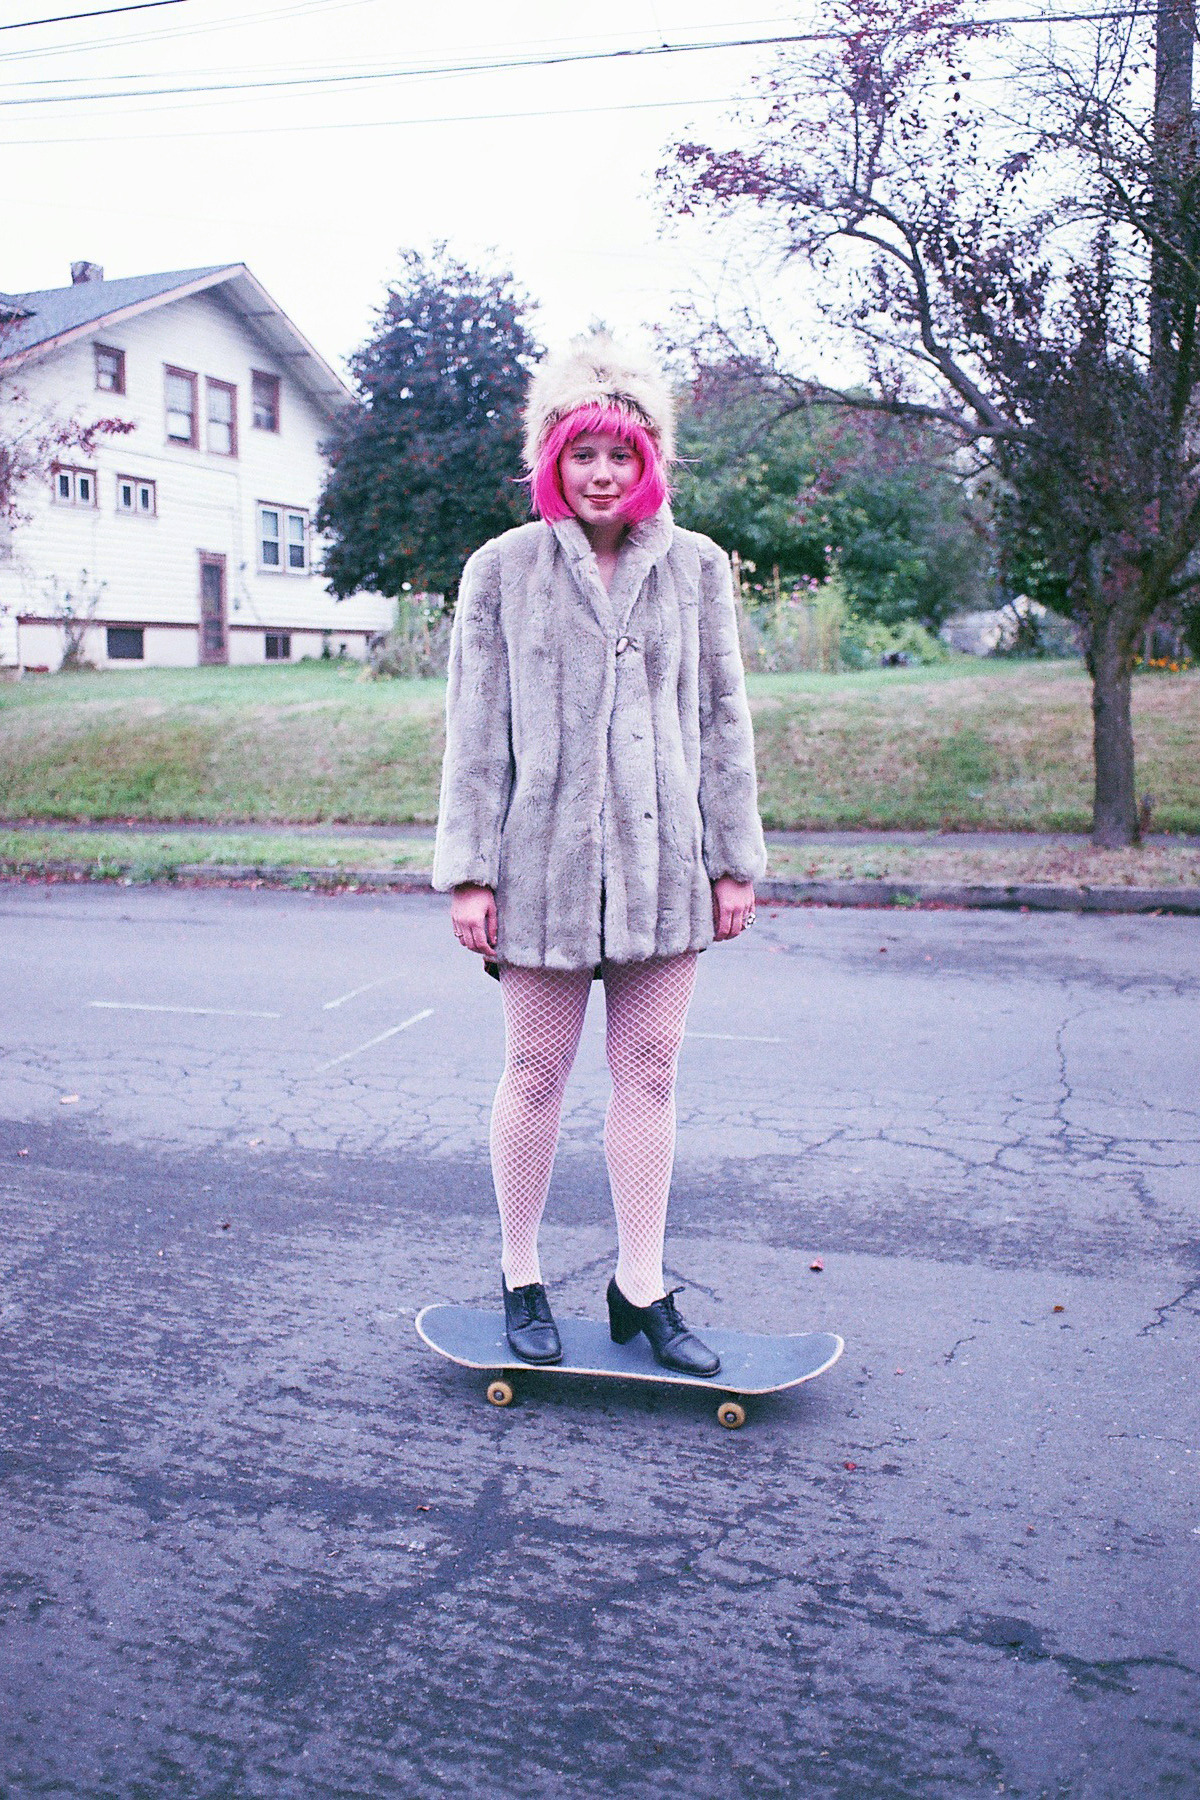 Megan and Skateboard. October 2012. Portland, OR.